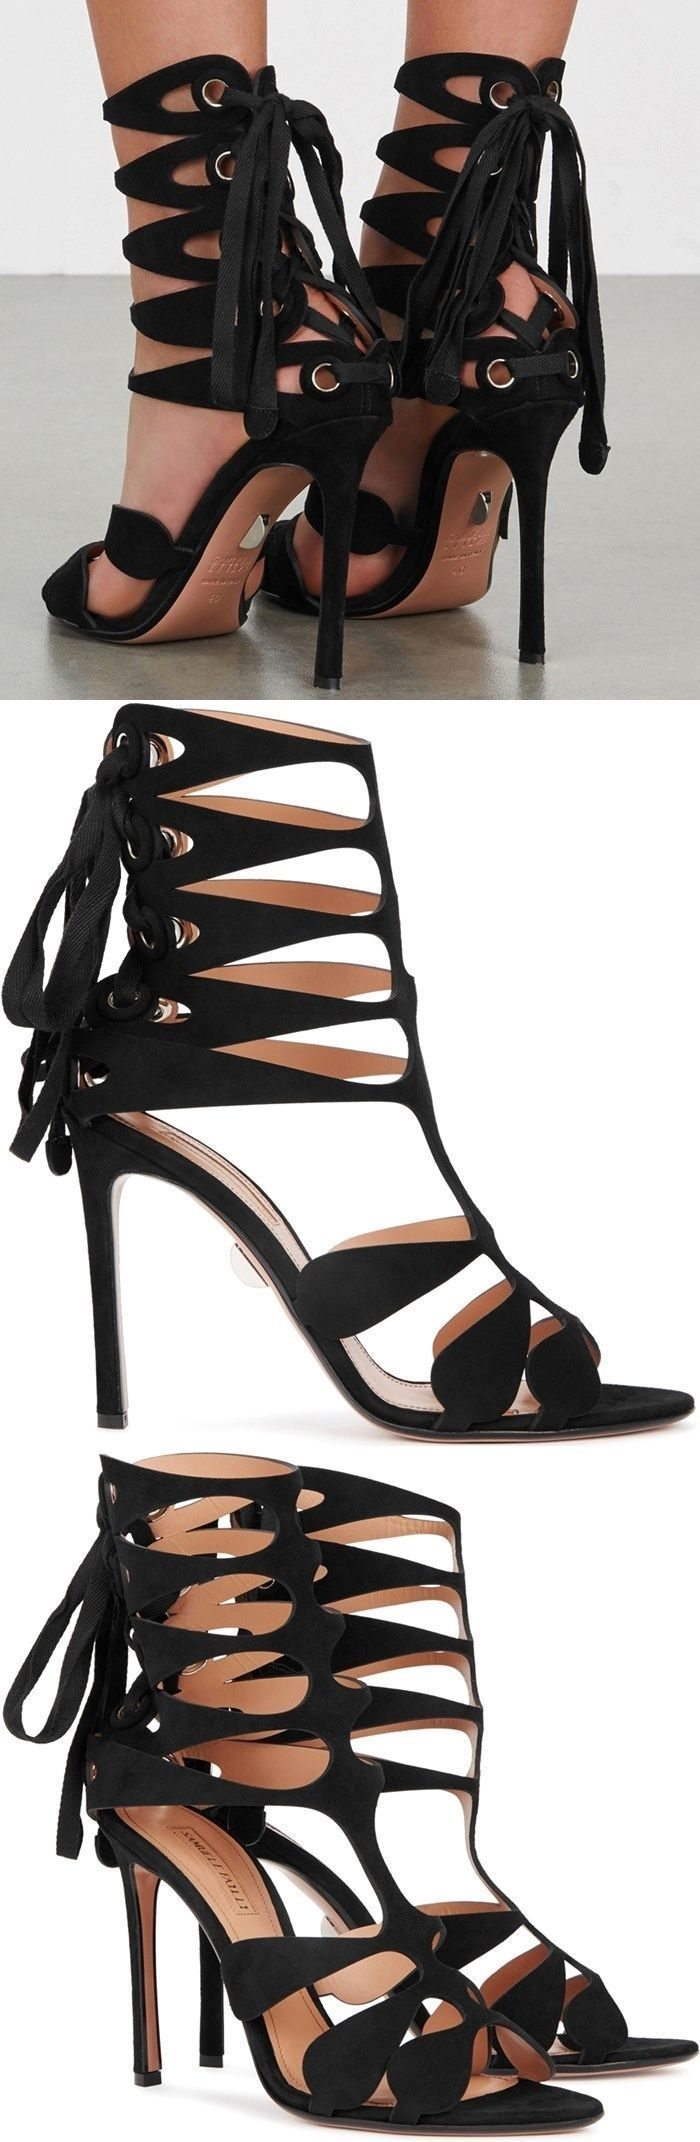 Crafted of black suede, these sandals are styled with cutouts, a lace-up back, and a slim stiletto heel. #stilettoheels2017 #stilettoheelsdress #sandalsheels2017